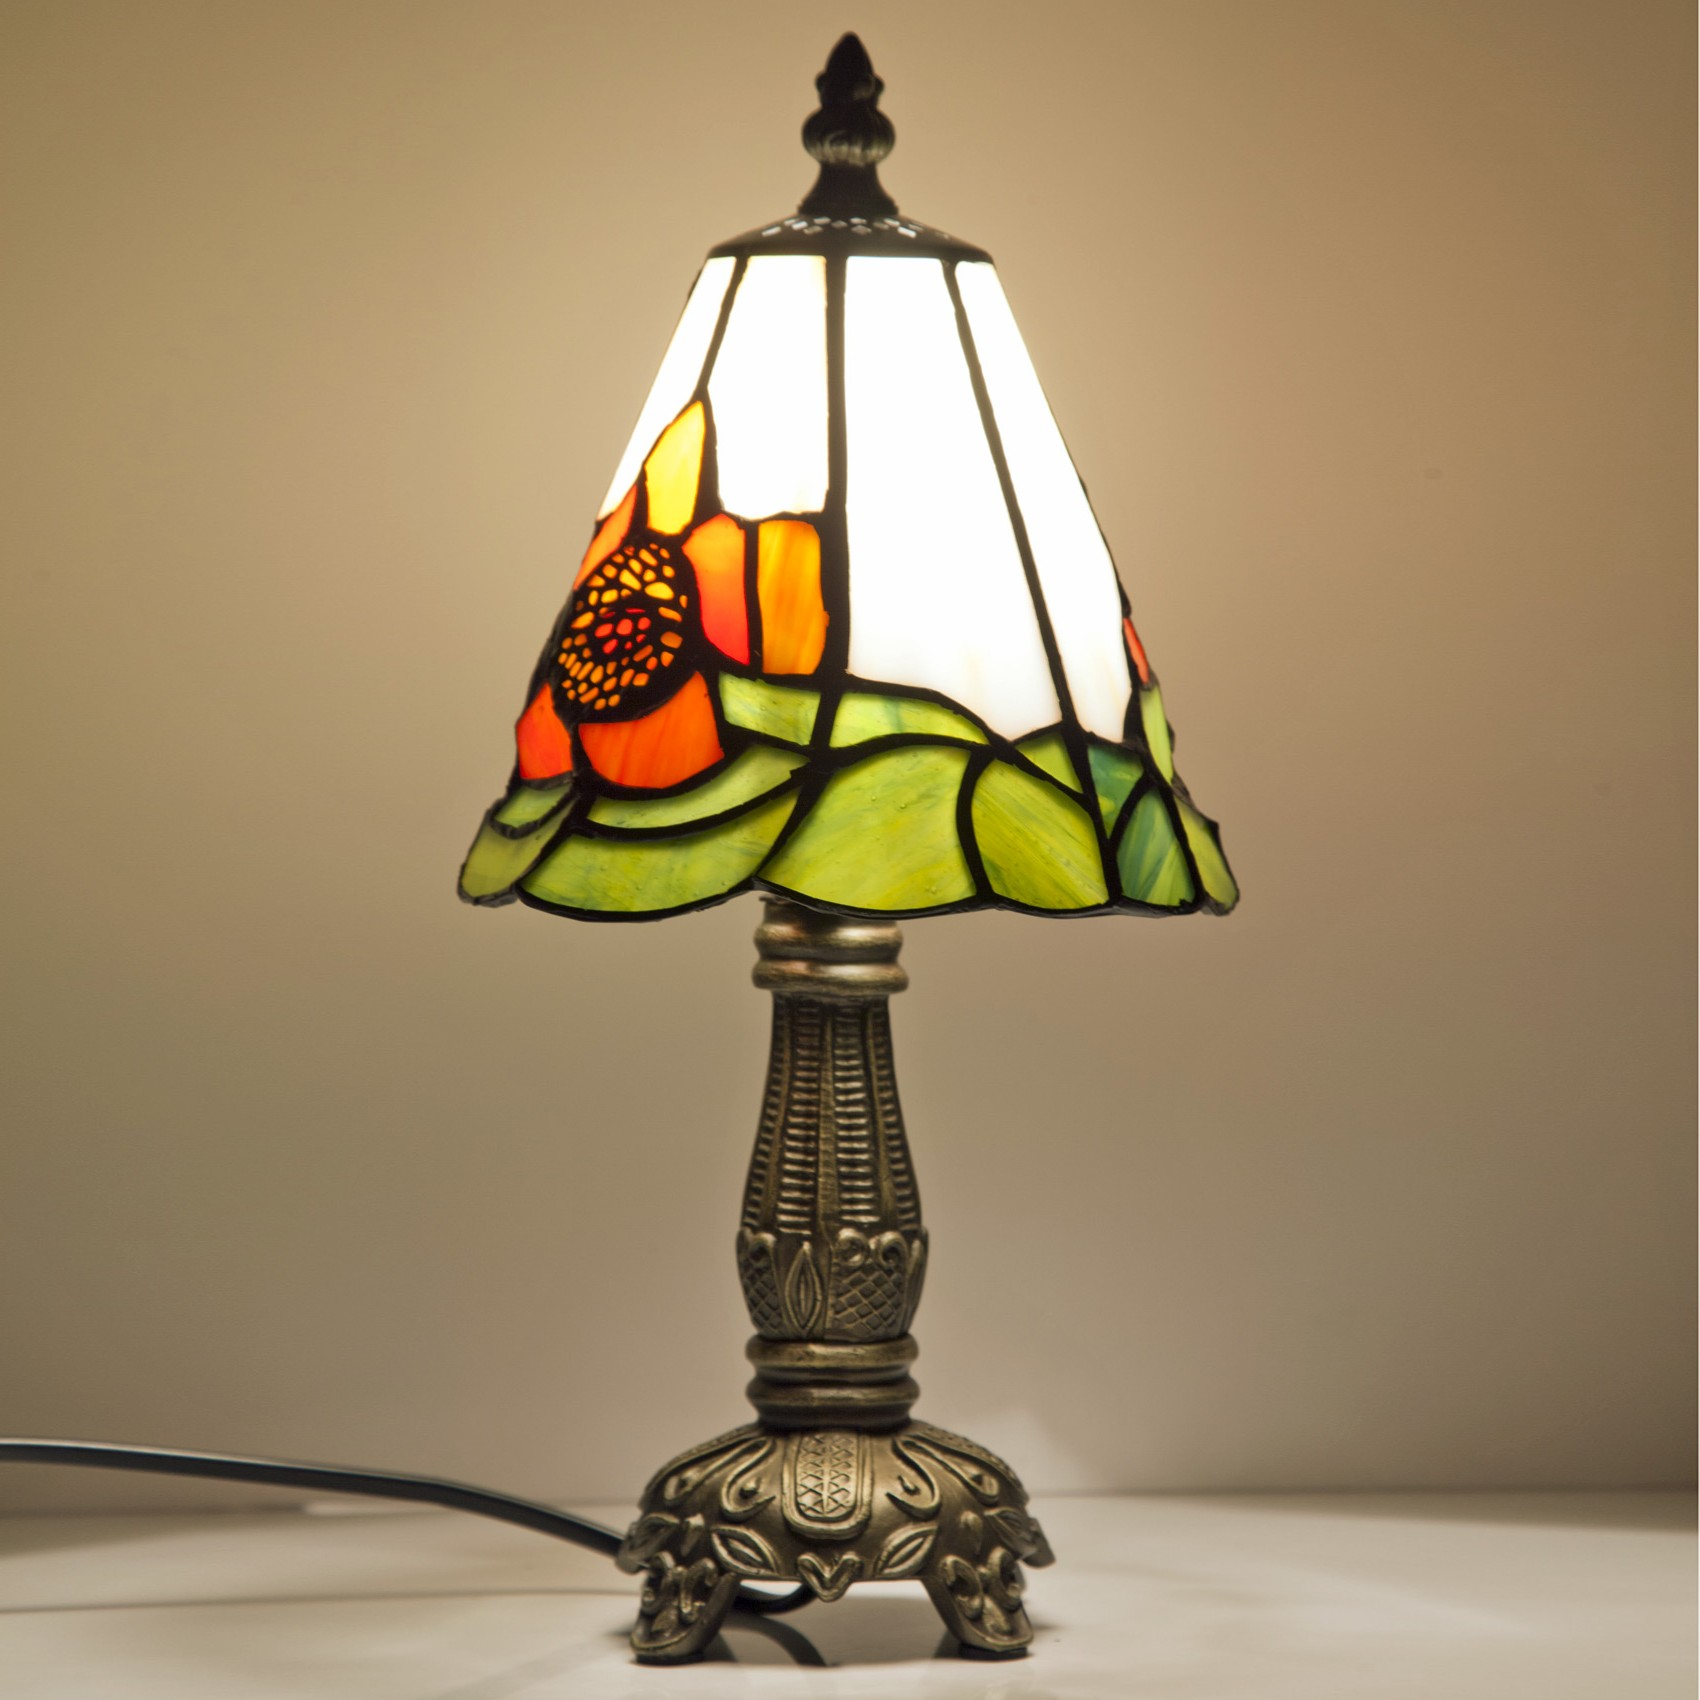 Small Table Lamp Make Romantic Atmosphere With Small Table Lamp Warisan